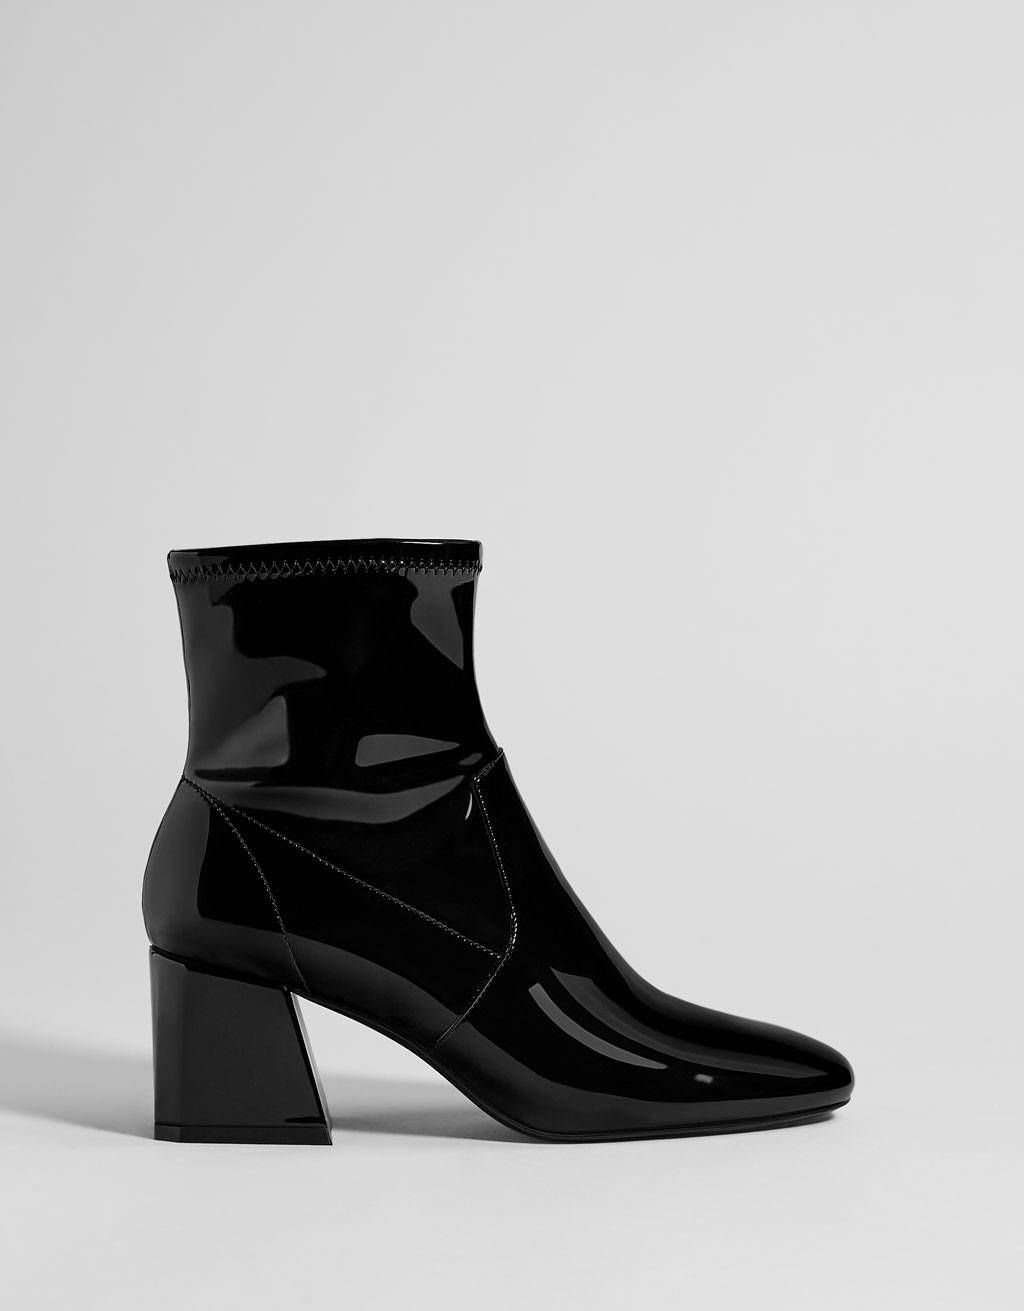 a287e26078c3 The Black Boot Trend Every Fashion Girl Knows About for Winter in ...